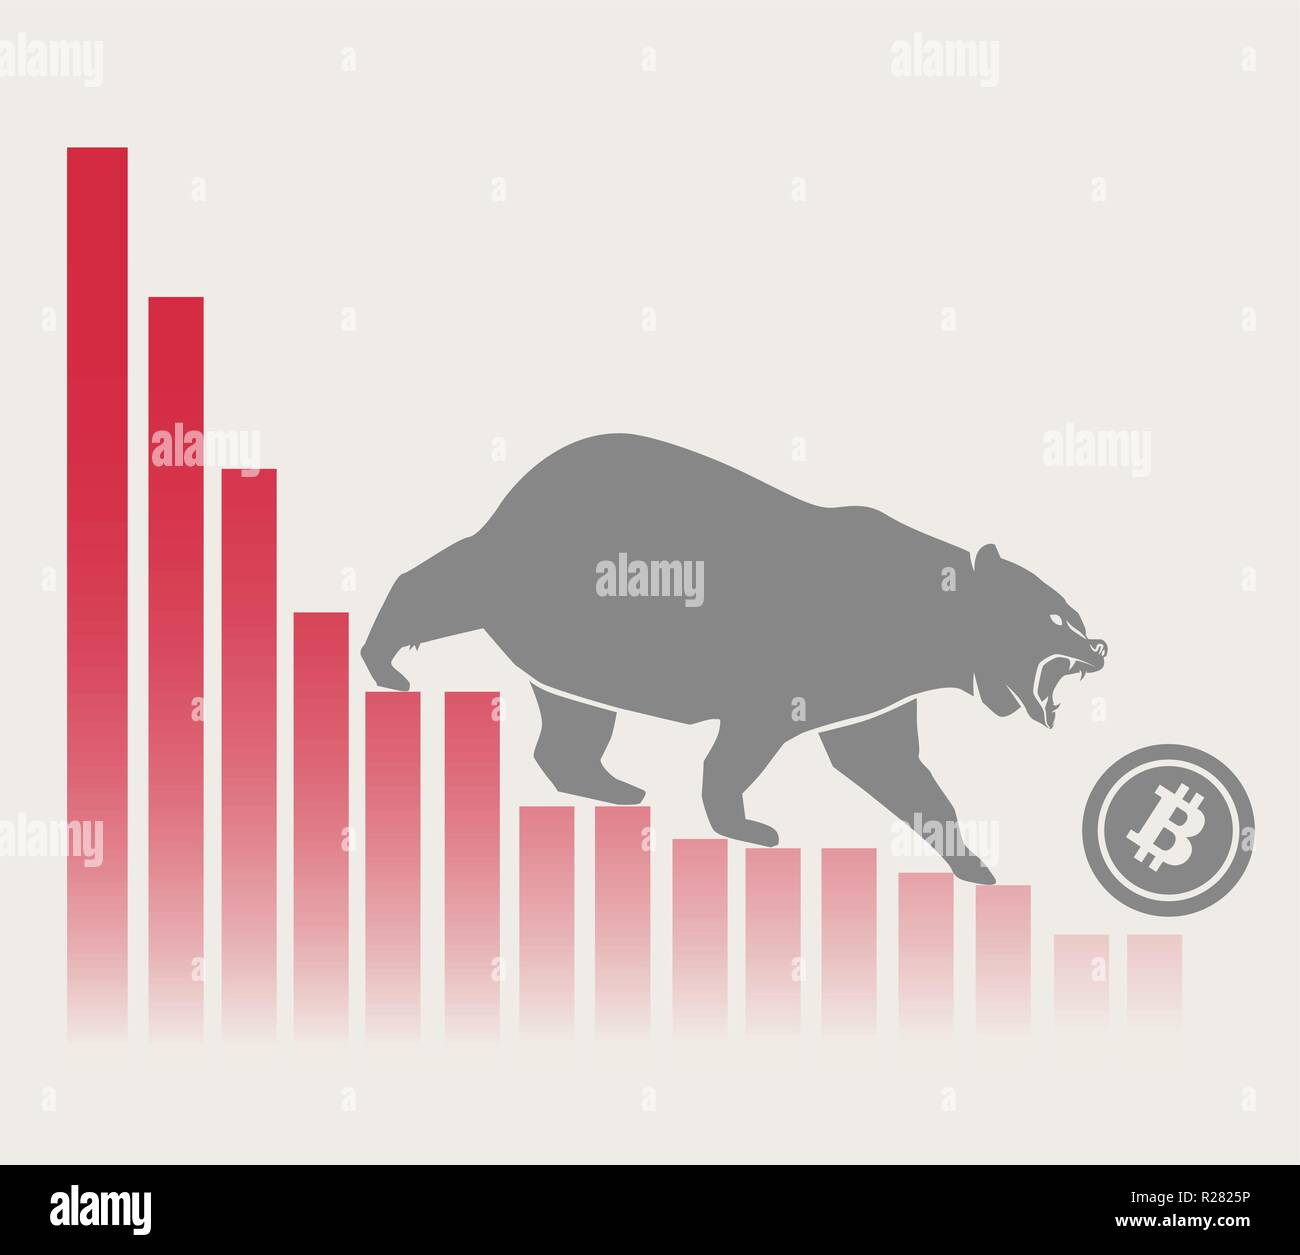 Bear moves Bitcoin down on graph, negative cryptocurrency market, grey background Stock Vector